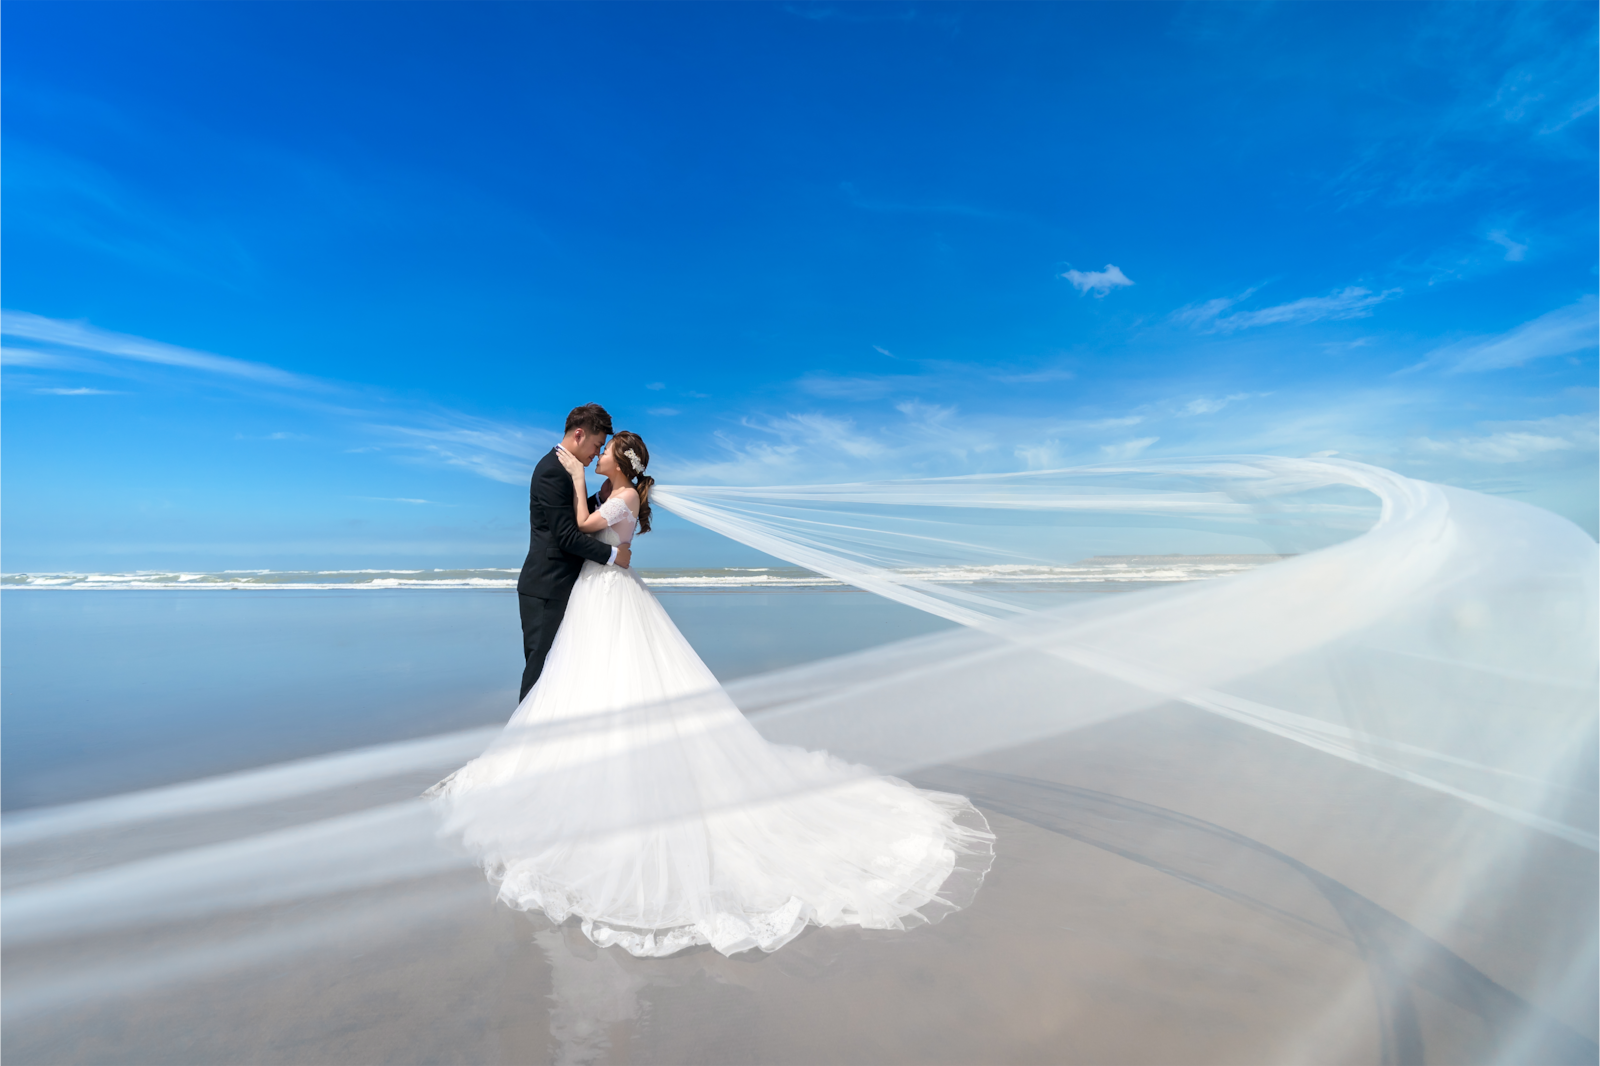 wedding couple standing by ocean with wedding veil in wind alpha 9